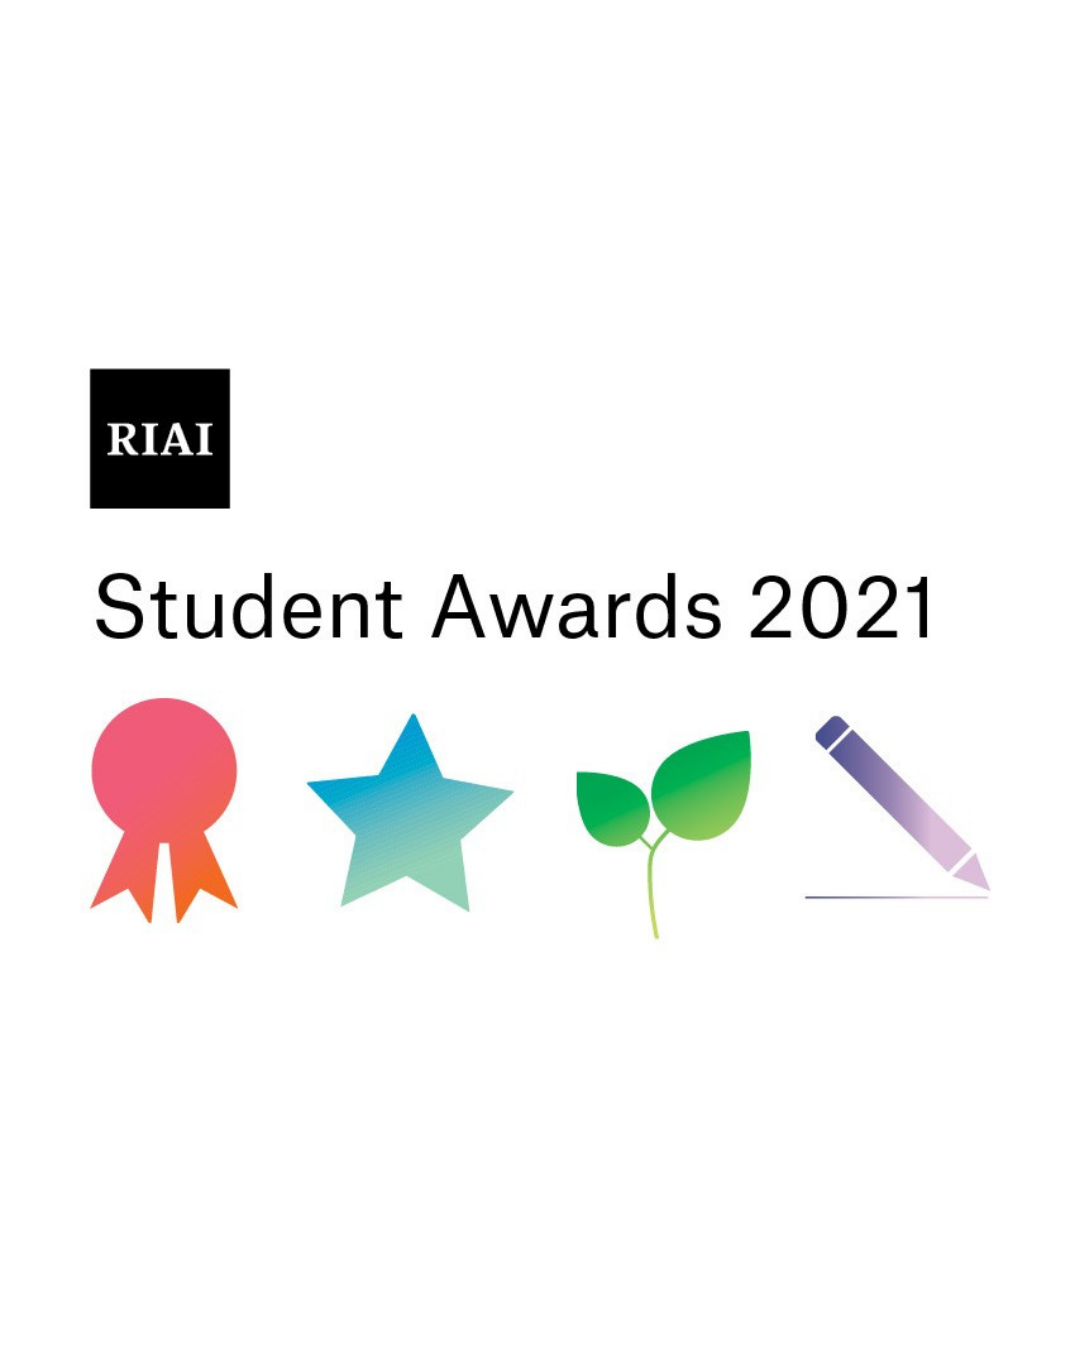 RIAI Student Awards